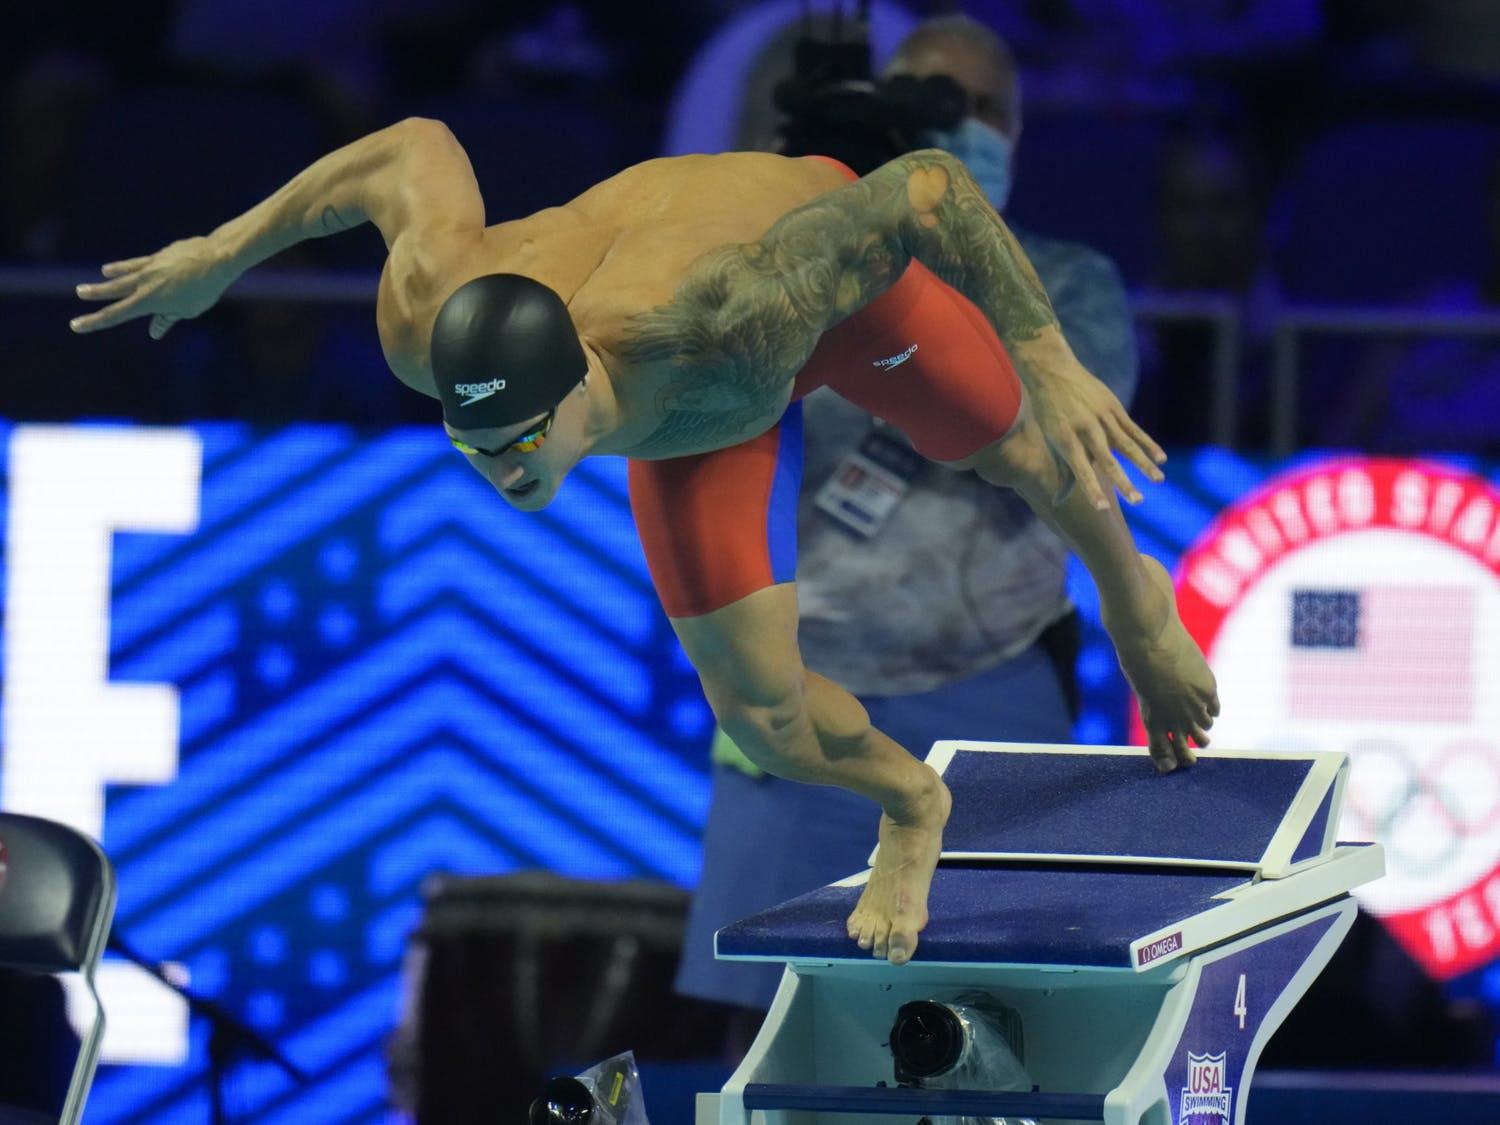 Caeleb Dressel participates in the men's 50 freestyle during wave 2 of the U.S. Olympic Swim Trials in Omaha, Neb on June 20, 2021. (AP Photo/Jeff Roberson)